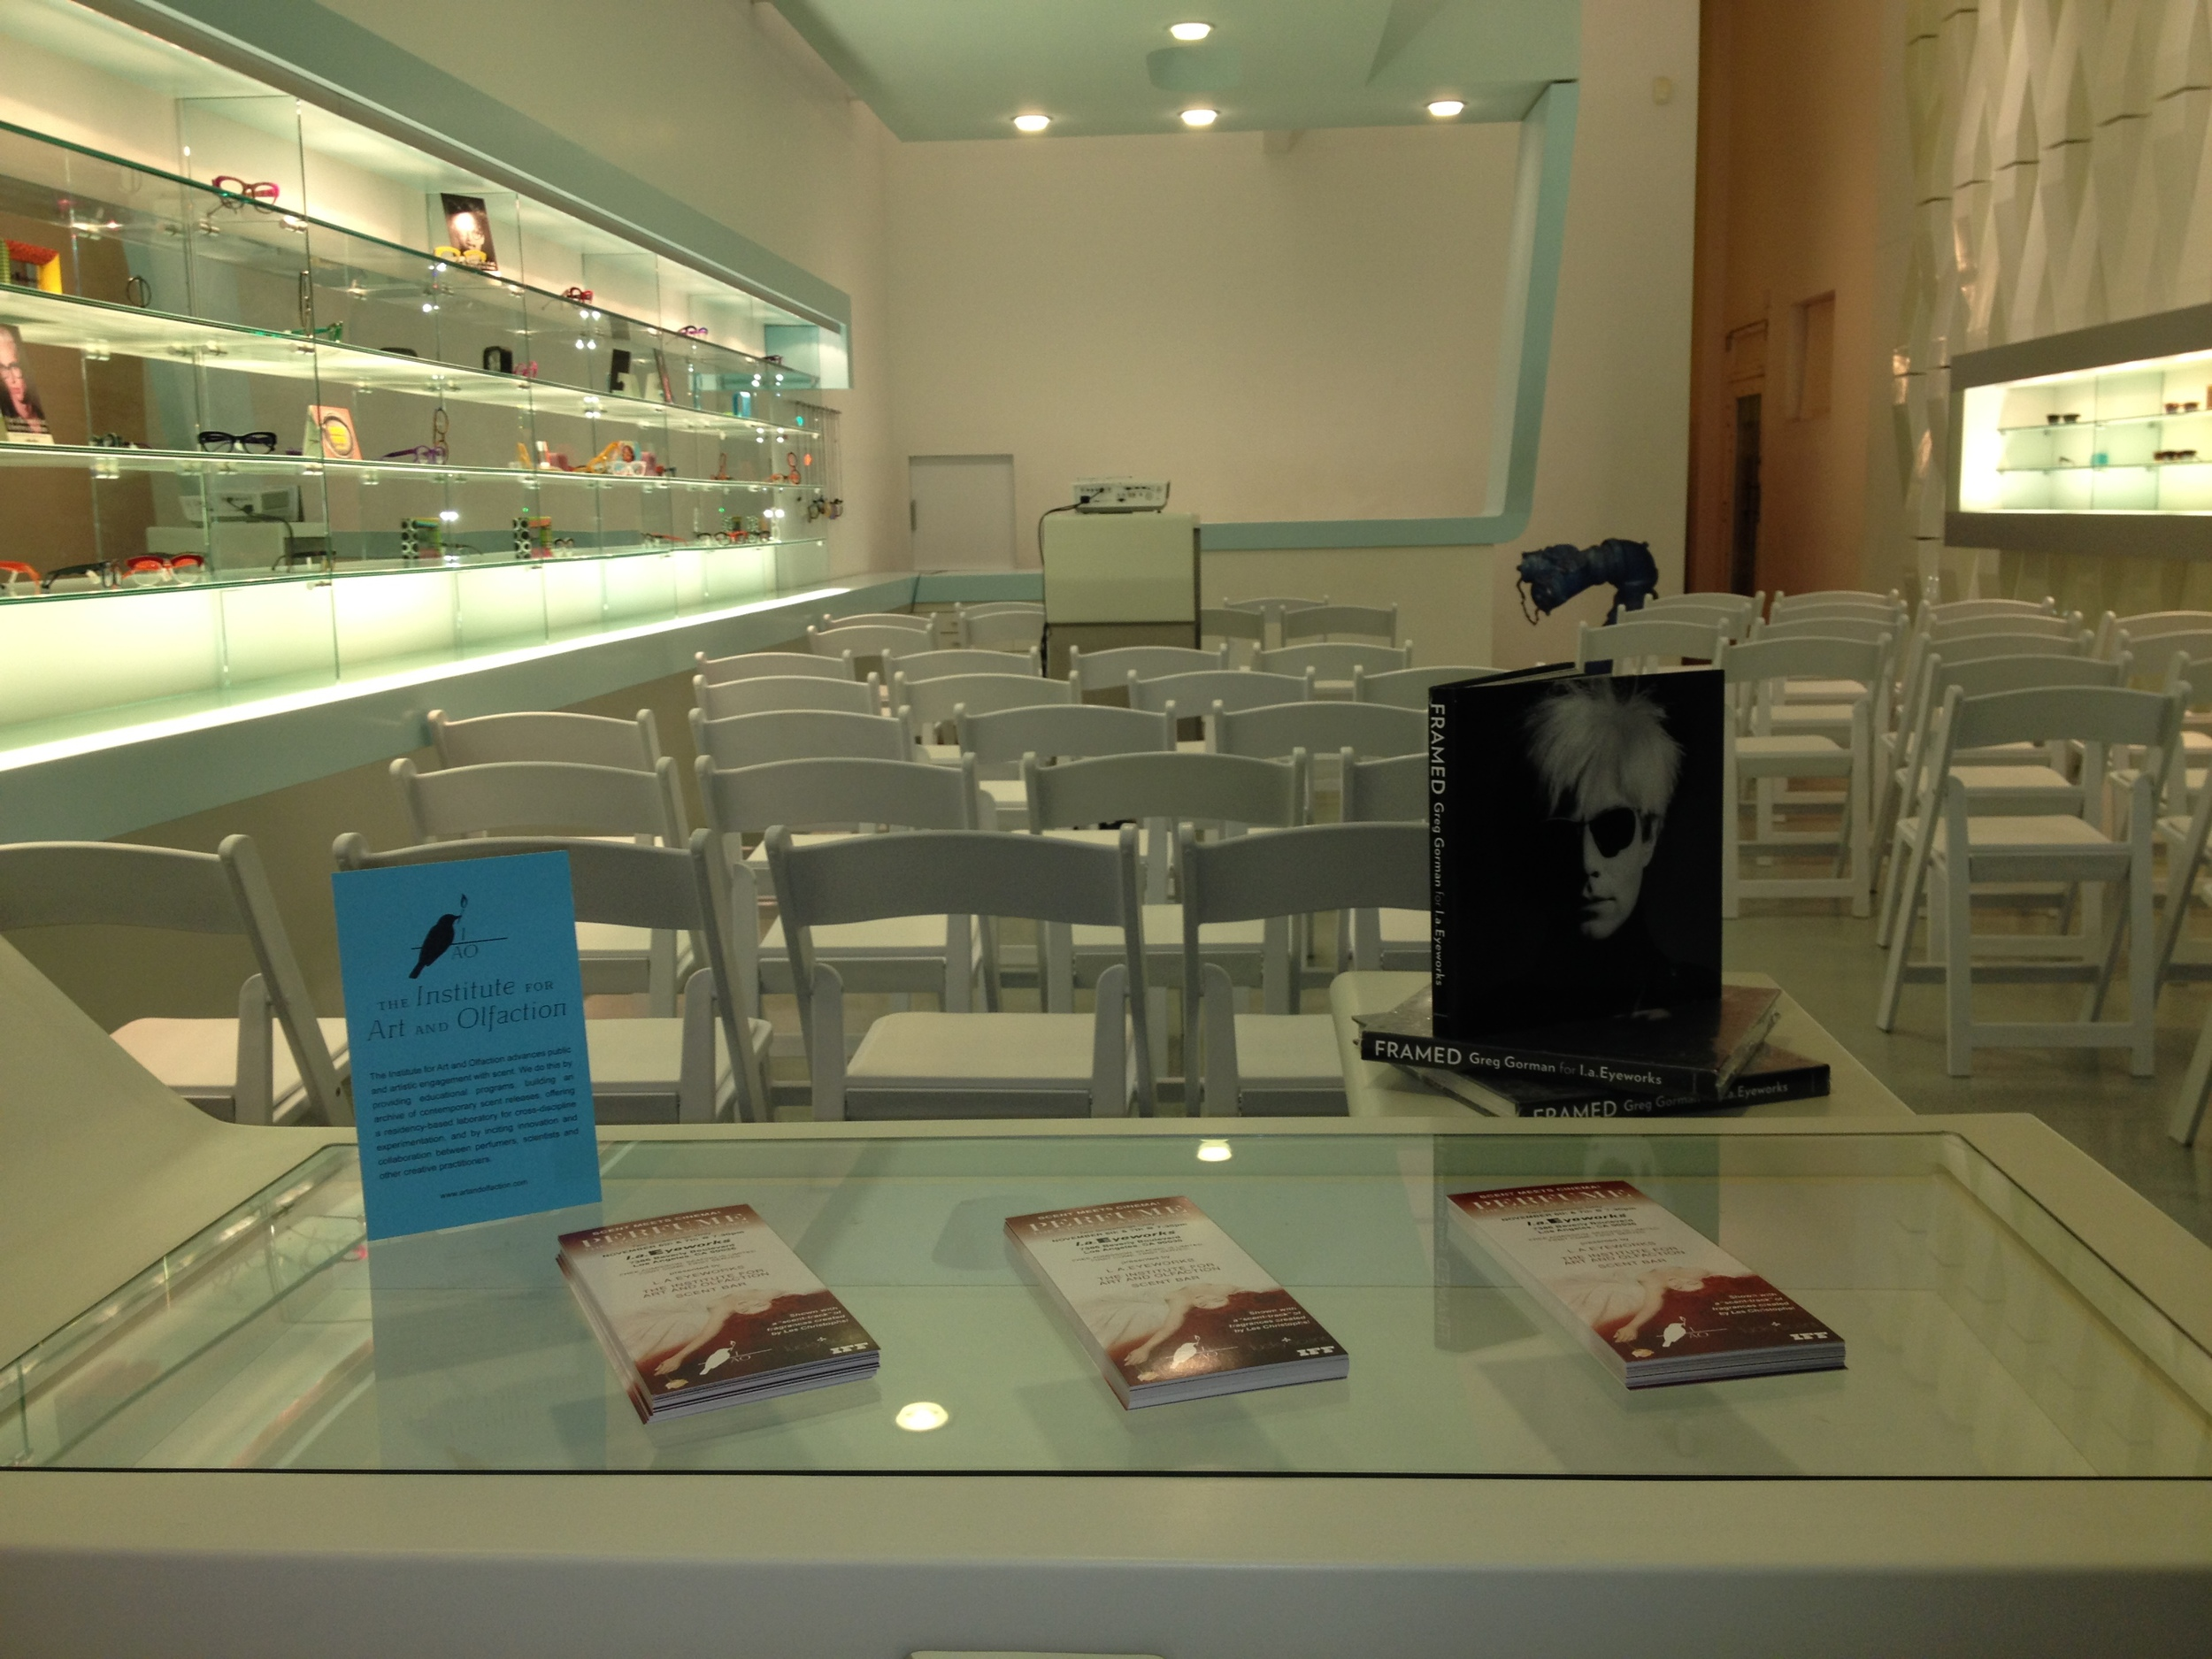 l.a.Eyeworks artistic inspired design is truly one of a kind. Thank you to everyone that made this possible.